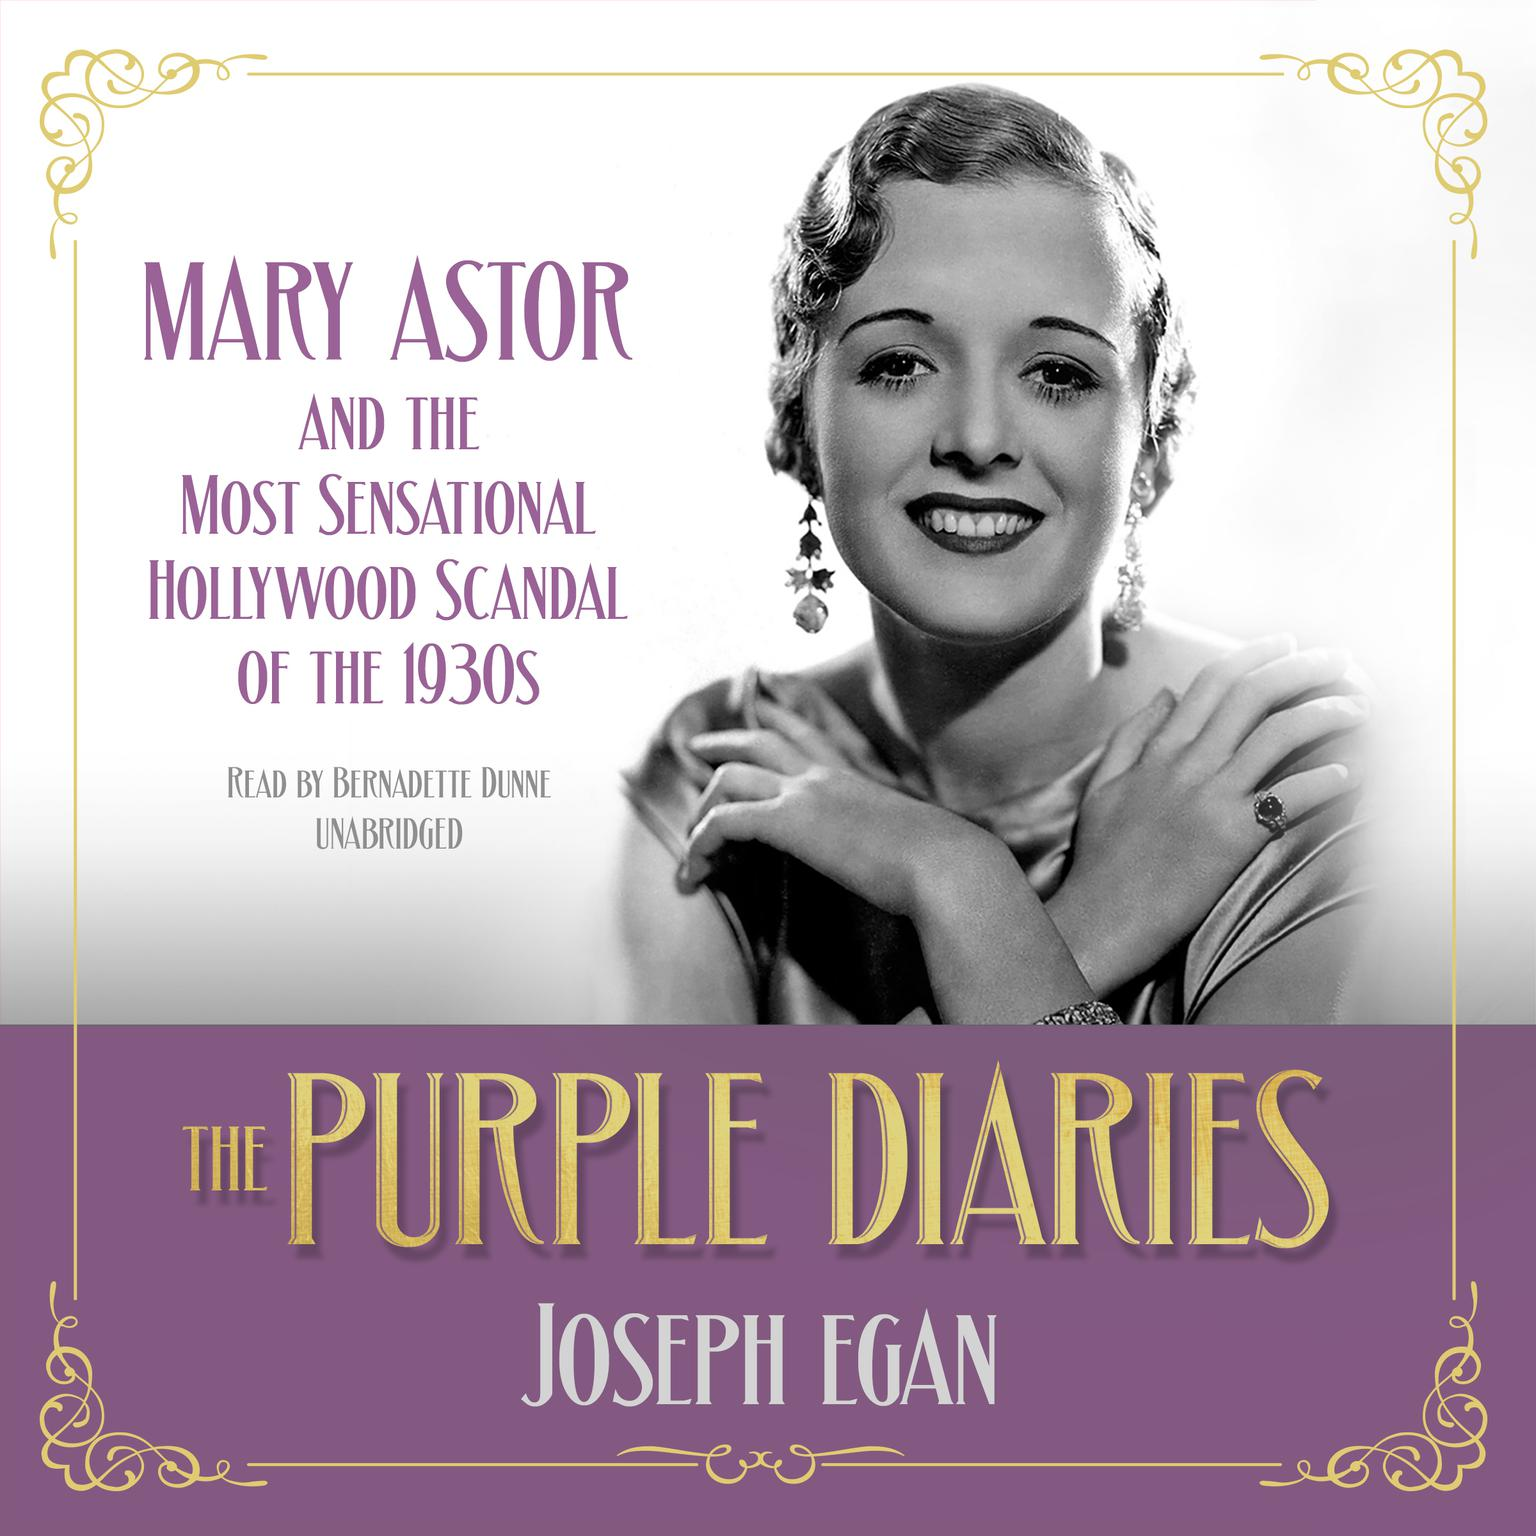 Printable The Purple Diaries: Mary Astor and the Most Sensational Hollywood Scandal of the 1930s  Audiobook Cover Art